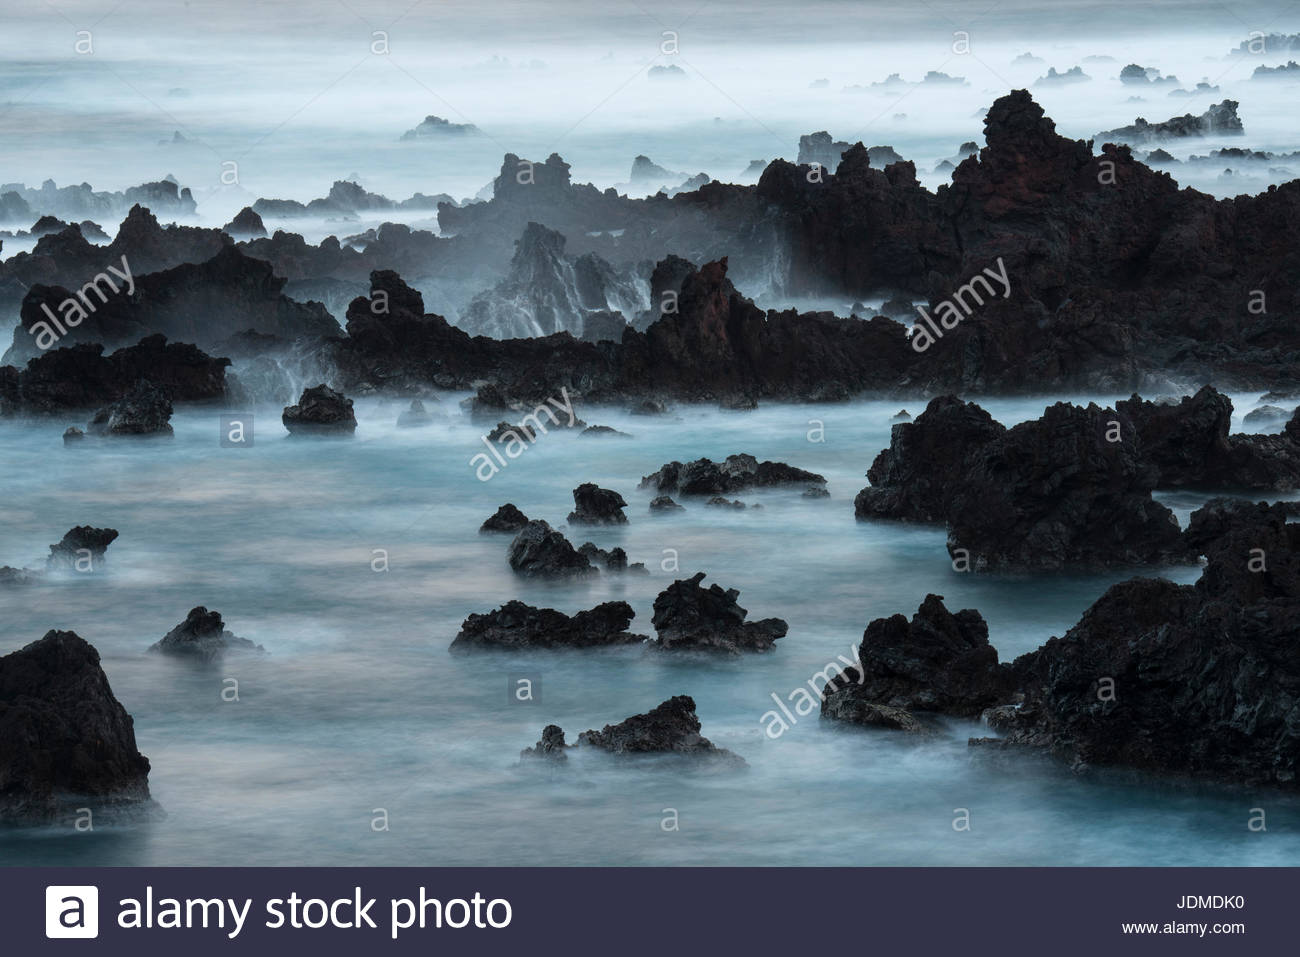 A long exposure of surf pouring over lava rocks at Easter Island. - Stock Image